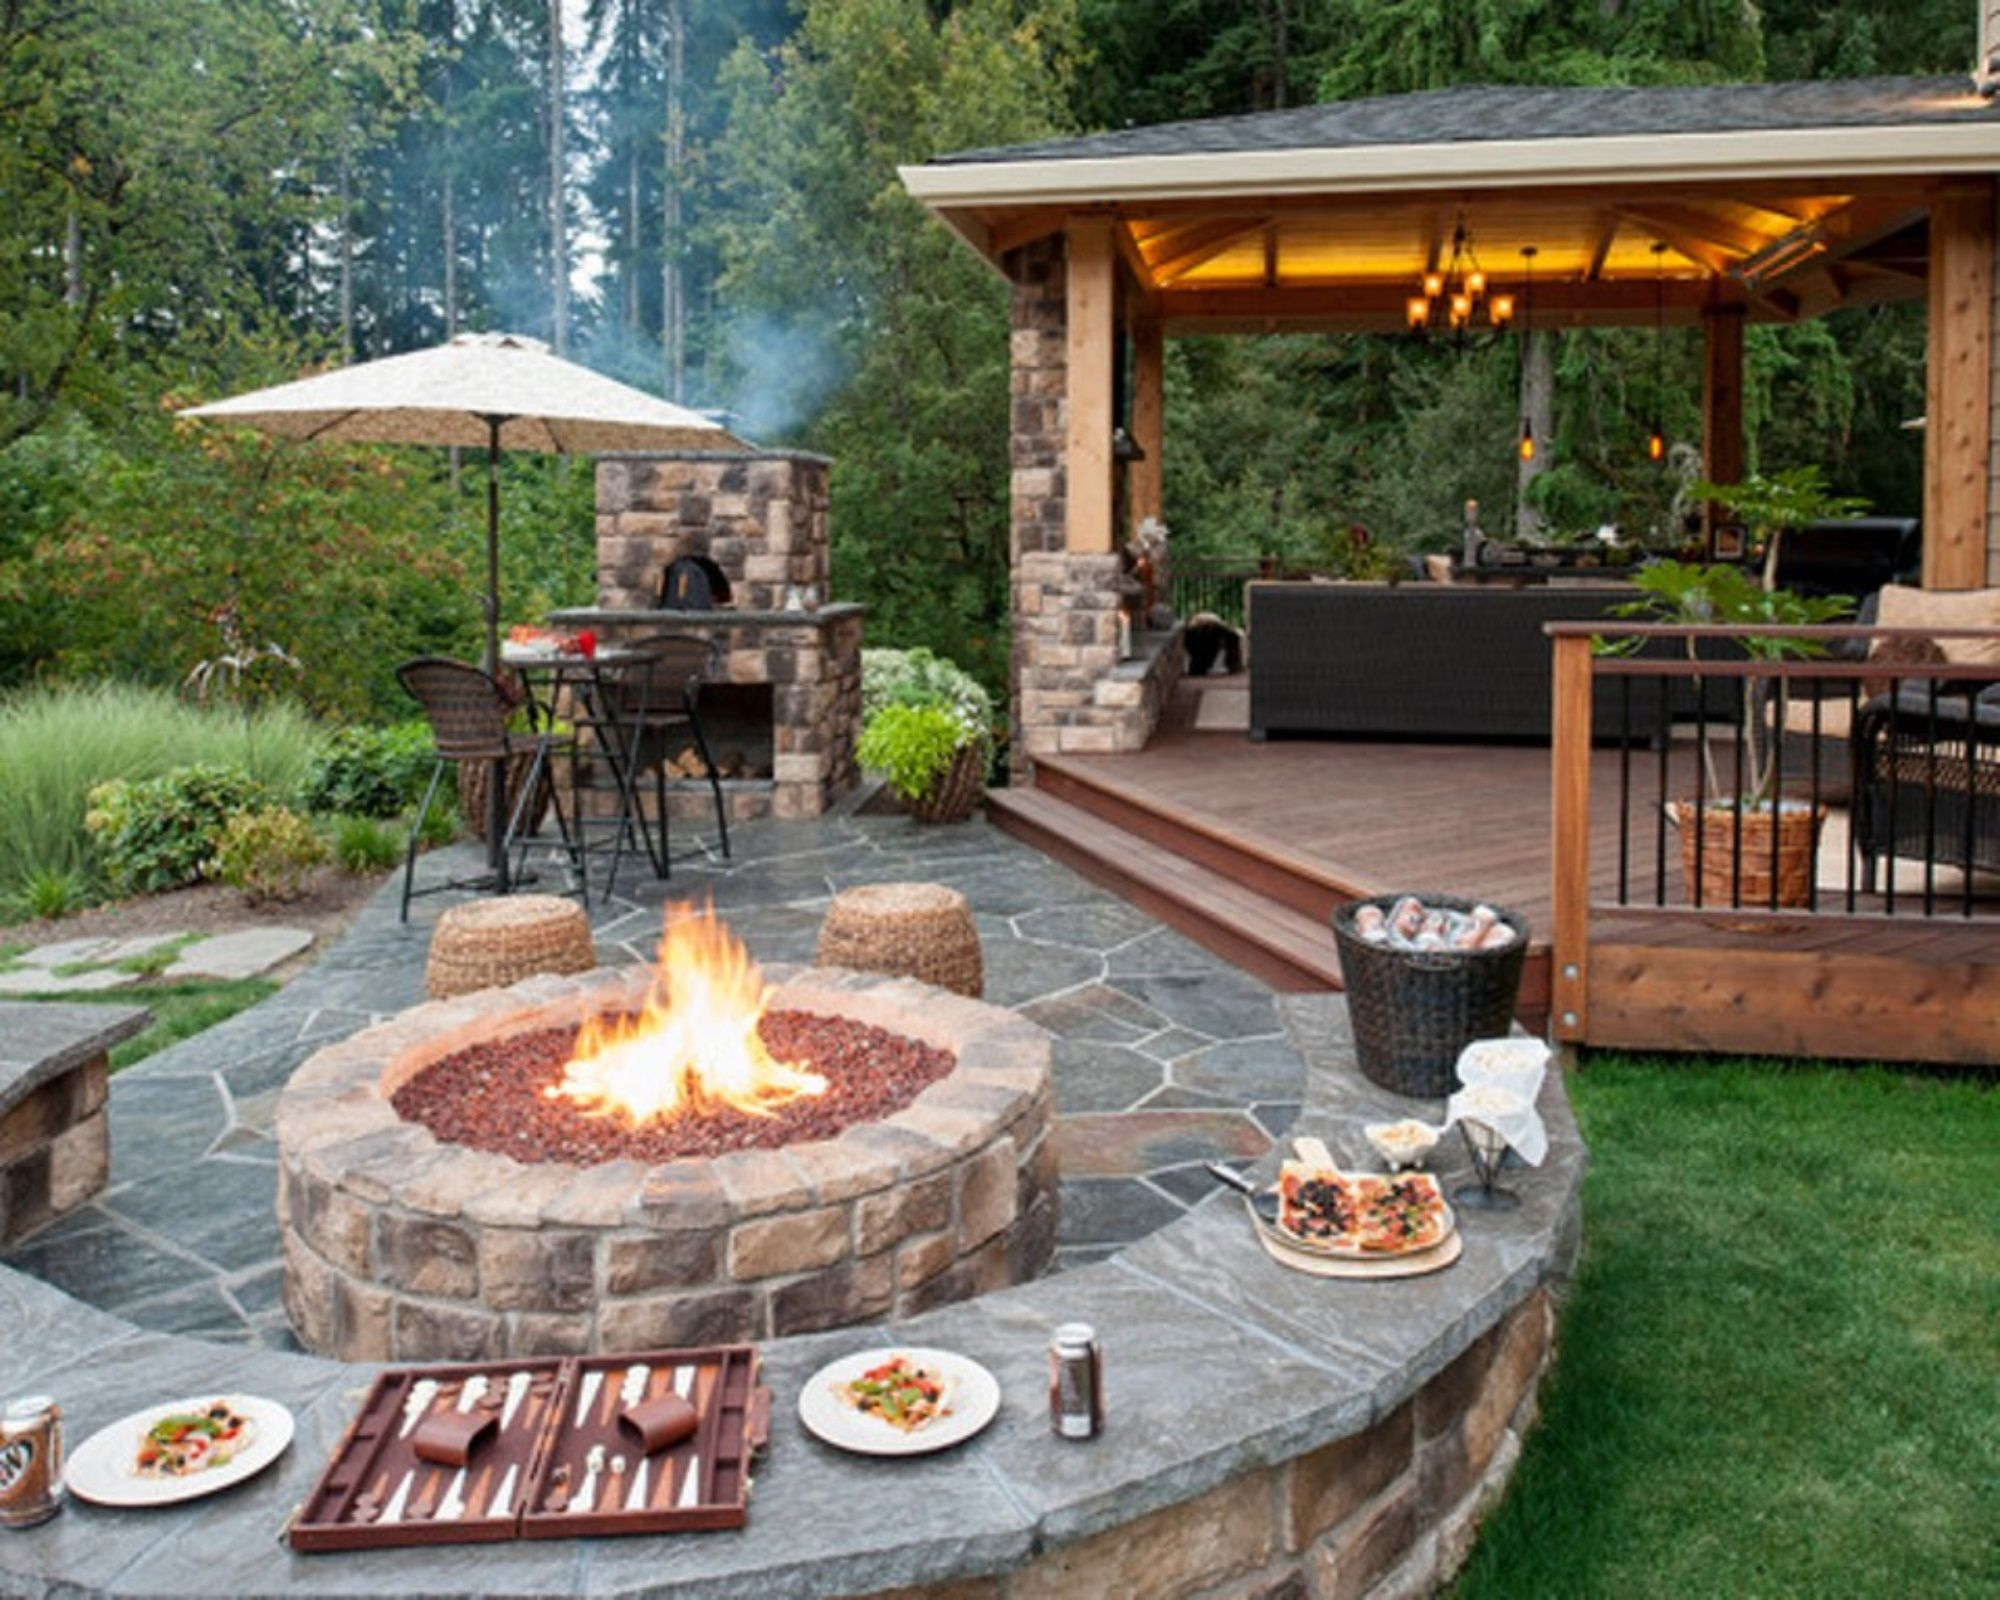 outdoor kitchen patio designs outdoor fire pit patio designs patio ... - Patio Ideas With Fireplace